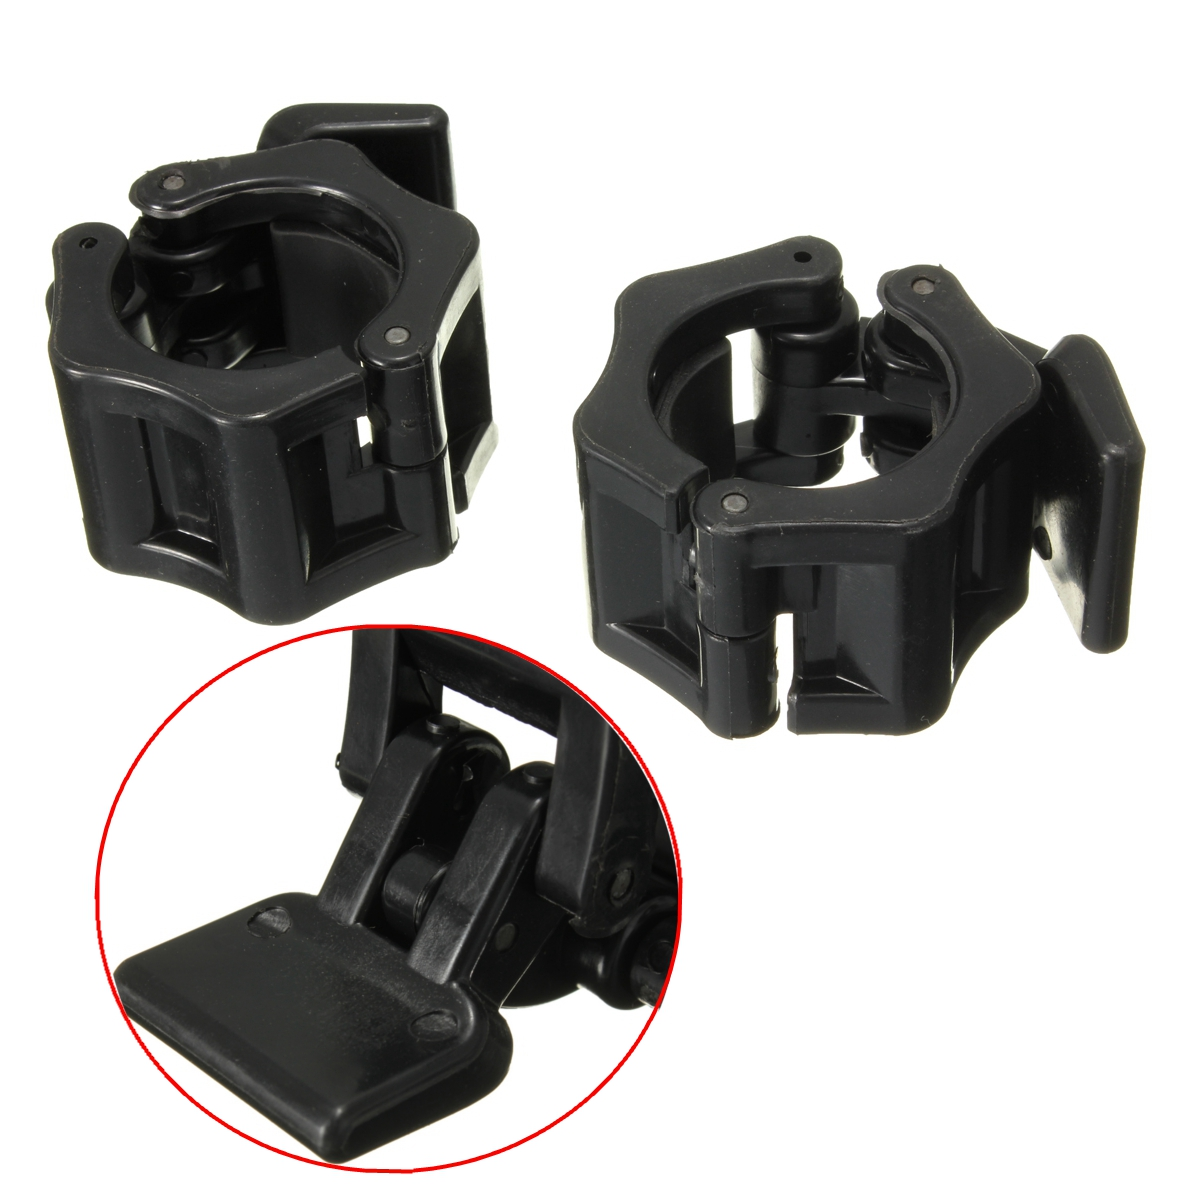 Inch mm standard barbell collar clamp dumbbell gym